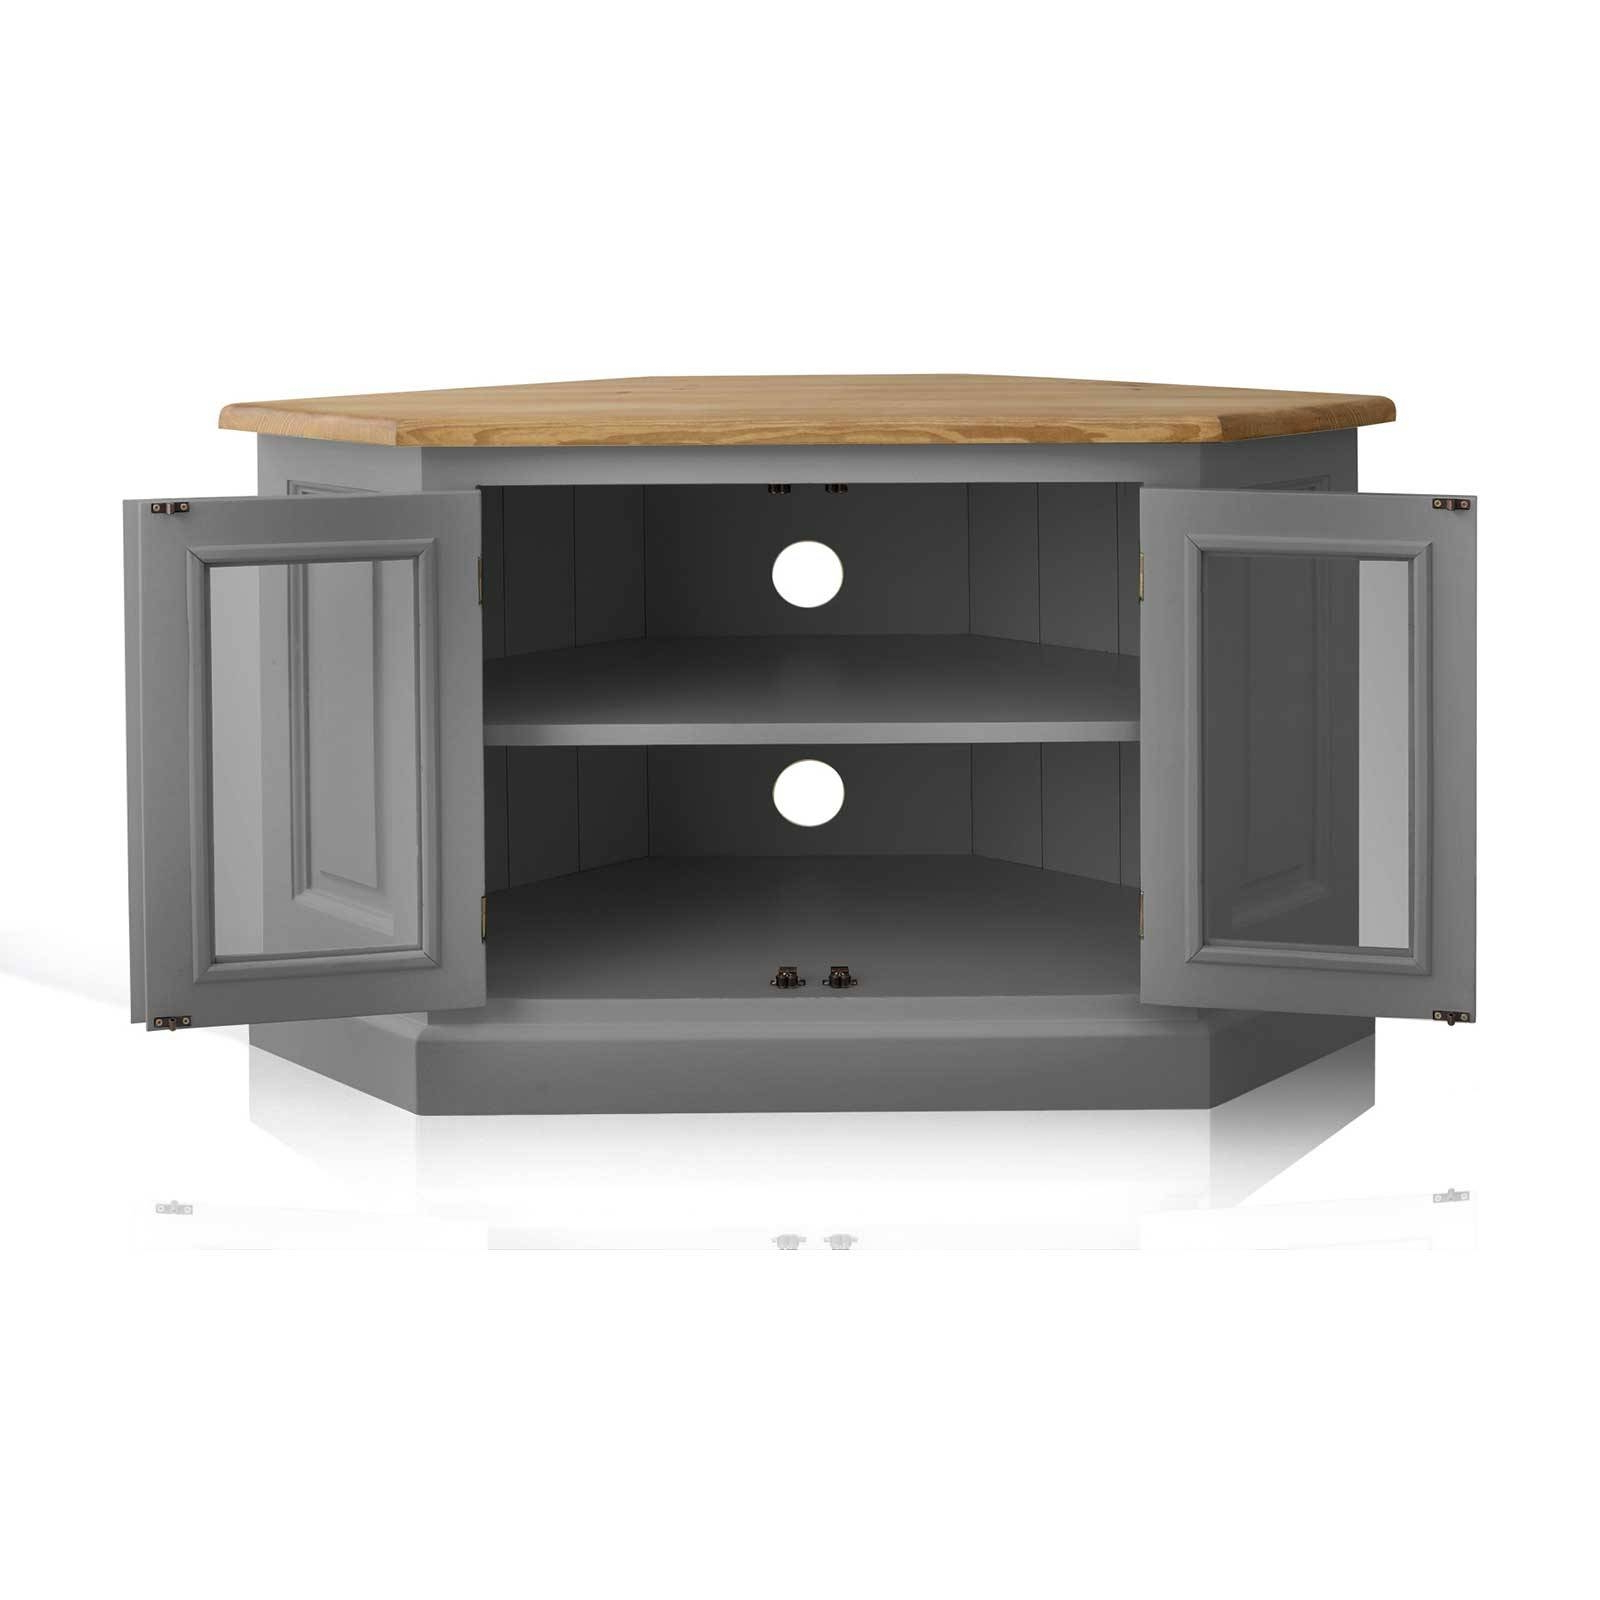 Tv Stands With Mount Rustic Wood Stand Modern Sliding Barn Doors Intended For Casey Grey 74 Inch Tv Stands (View 18 of 20)